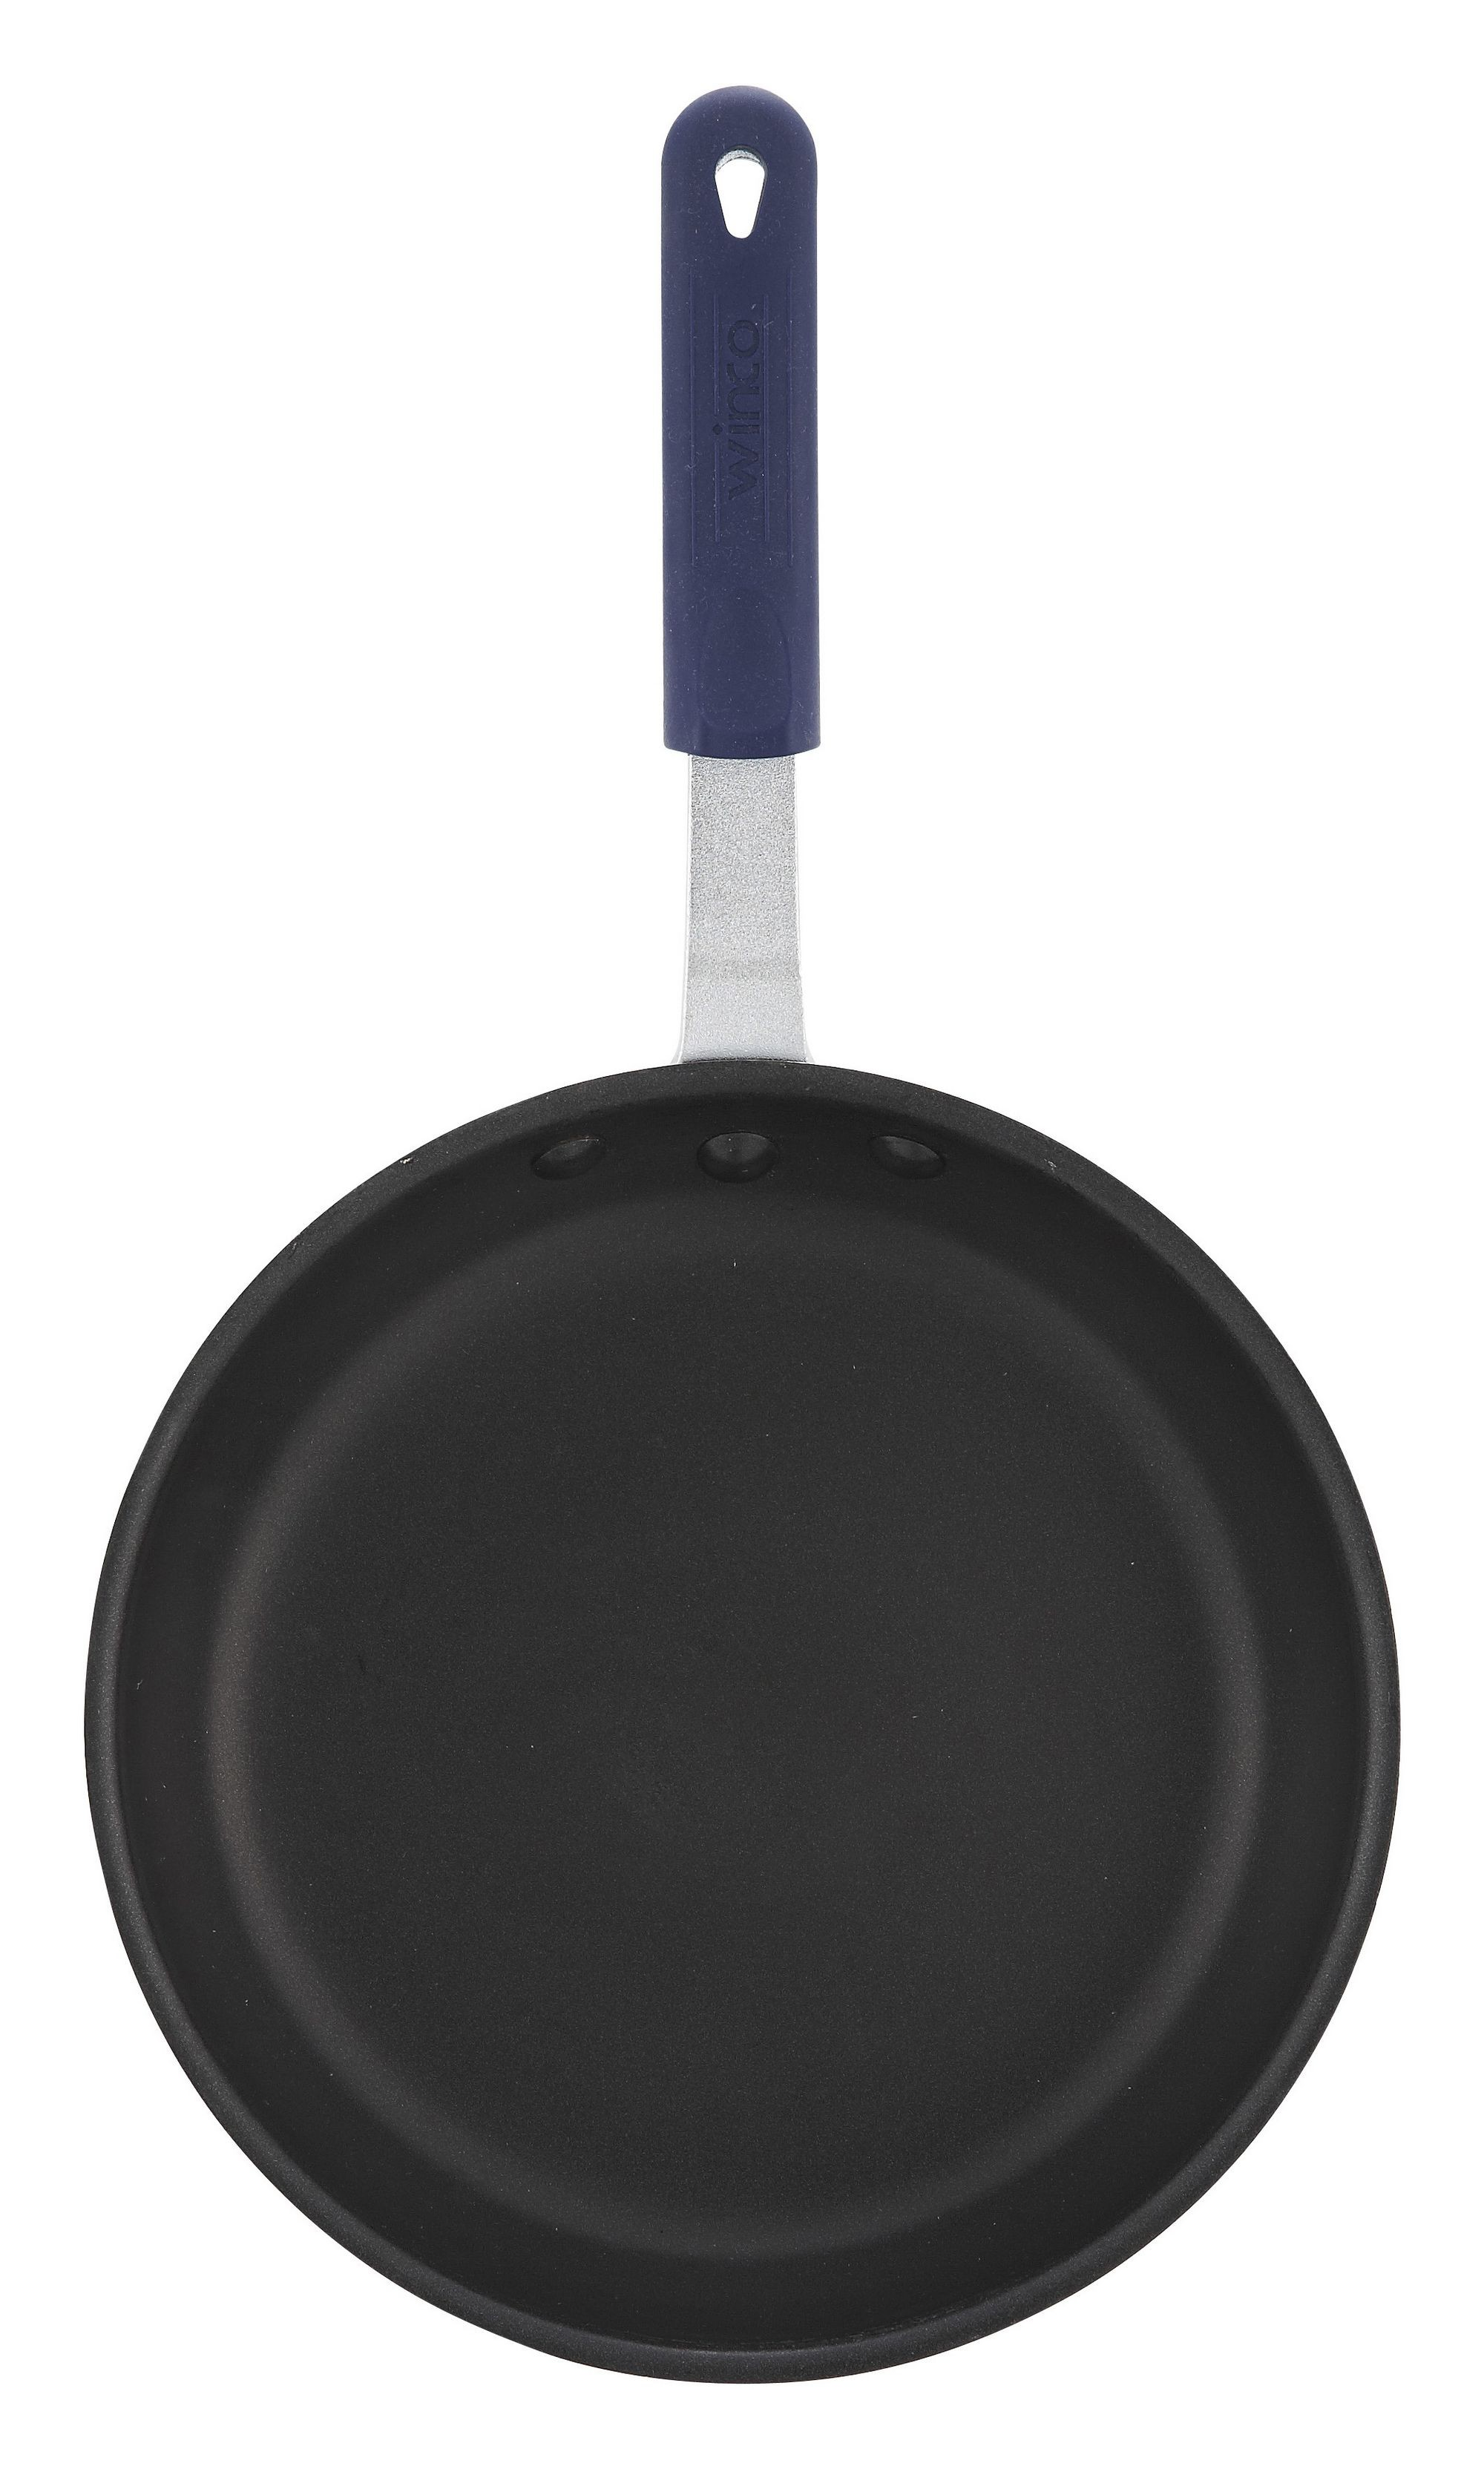 "Winco afp-12xc-h 12"" Gladiator Aluminum Fry Pan with Excalibur Coating and Silicone Sleeve"